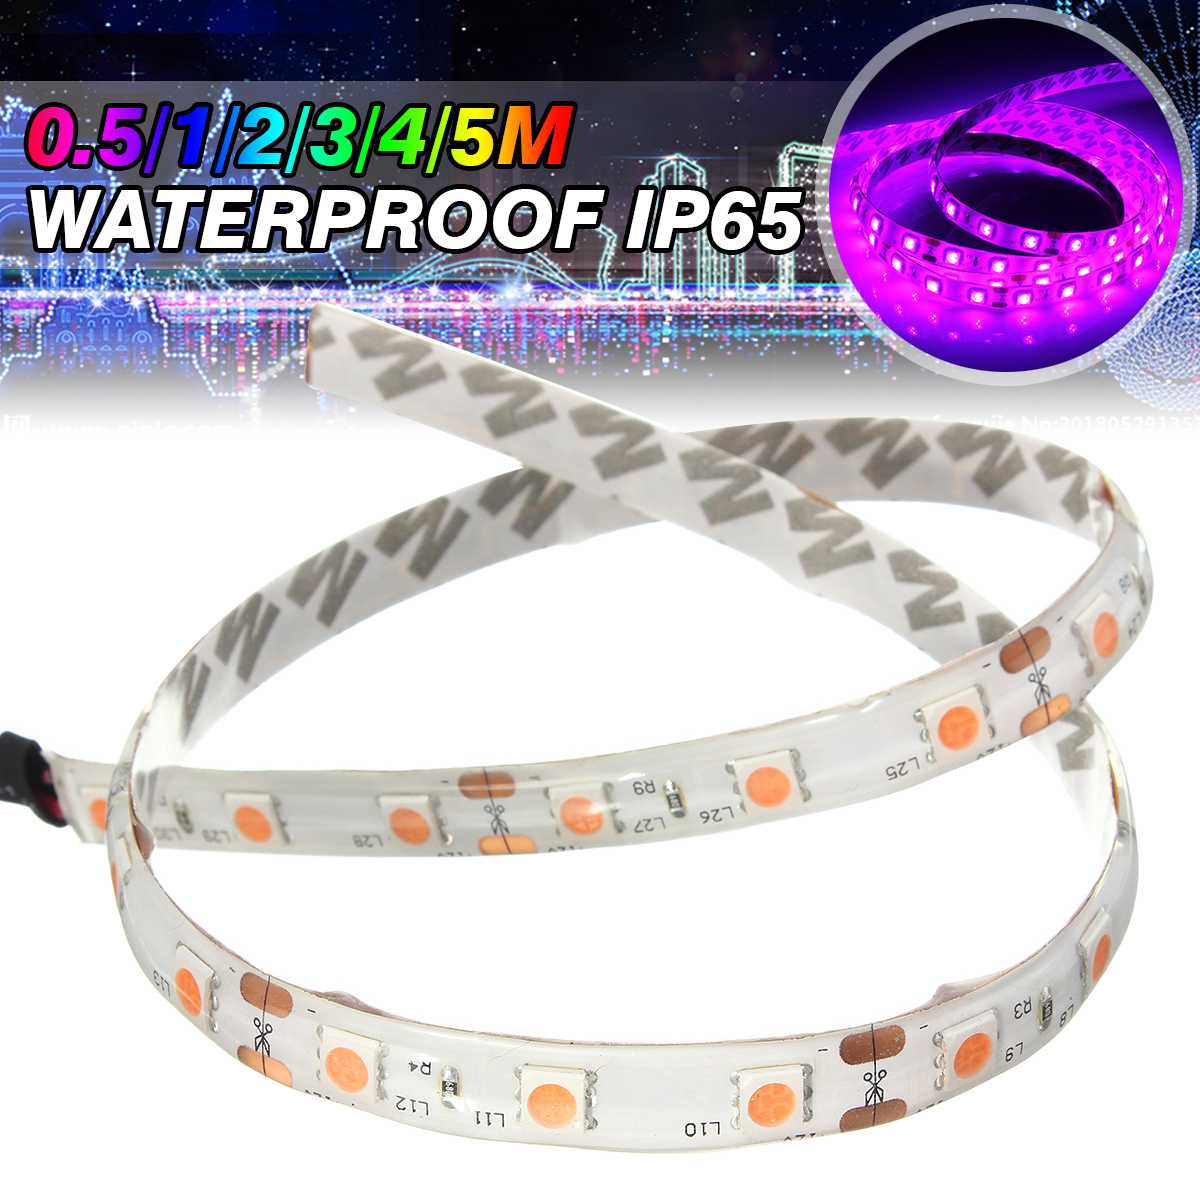 0.5/1/2/3/4/5M UV Lamp Ultraviolet Purple Led Strip Light 12V DC 5050 SMD Black LED Lamp 395-405nm Strip Light Waterproof IP65